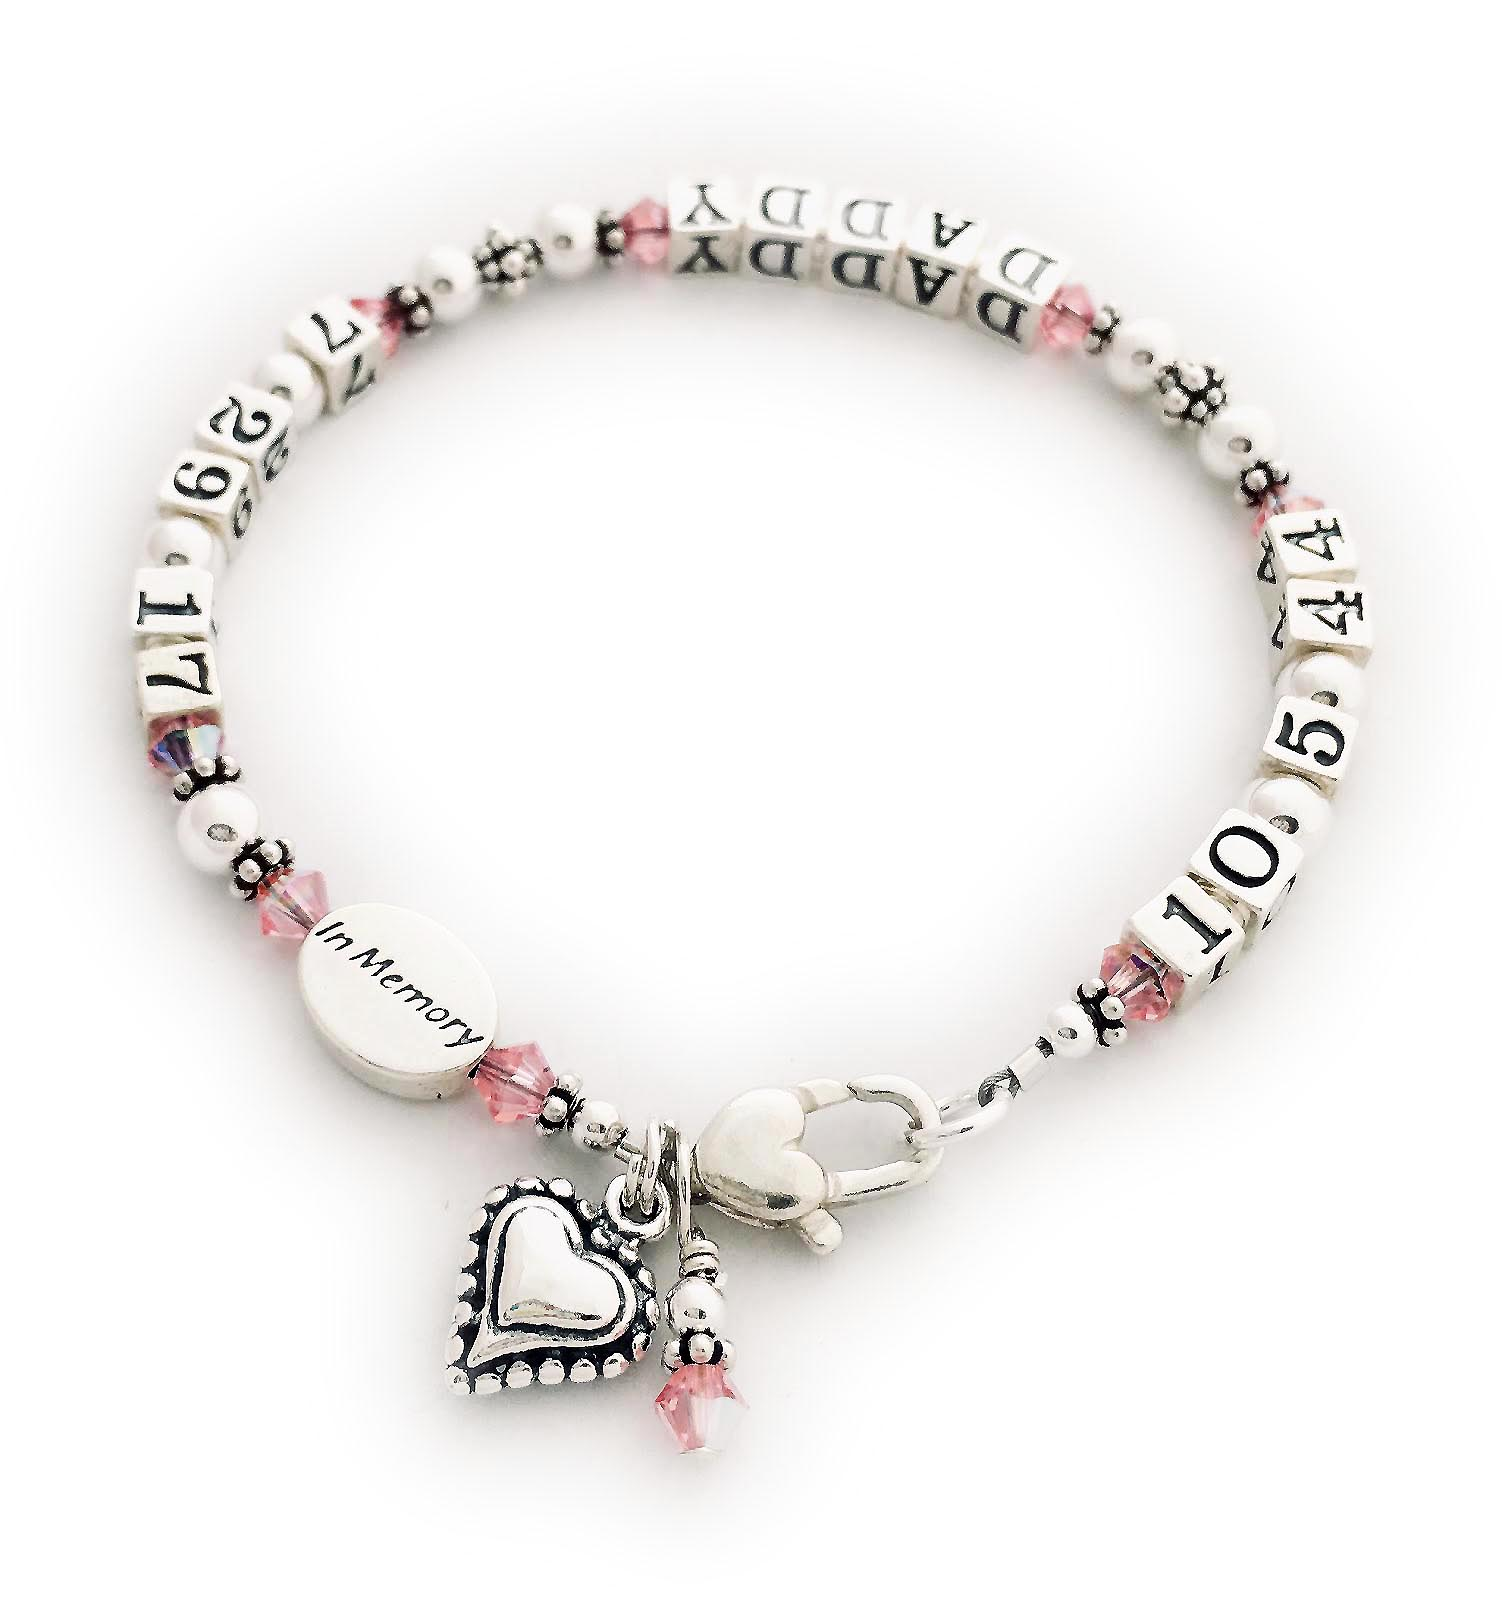 Lifetime or In Memory Bracelet for Daddys Little Girl - This life time bracelet is shown with October crystals and DADDY. Changes: They upgraded to a Heart Toggle clasp and took off the ribbon charm.